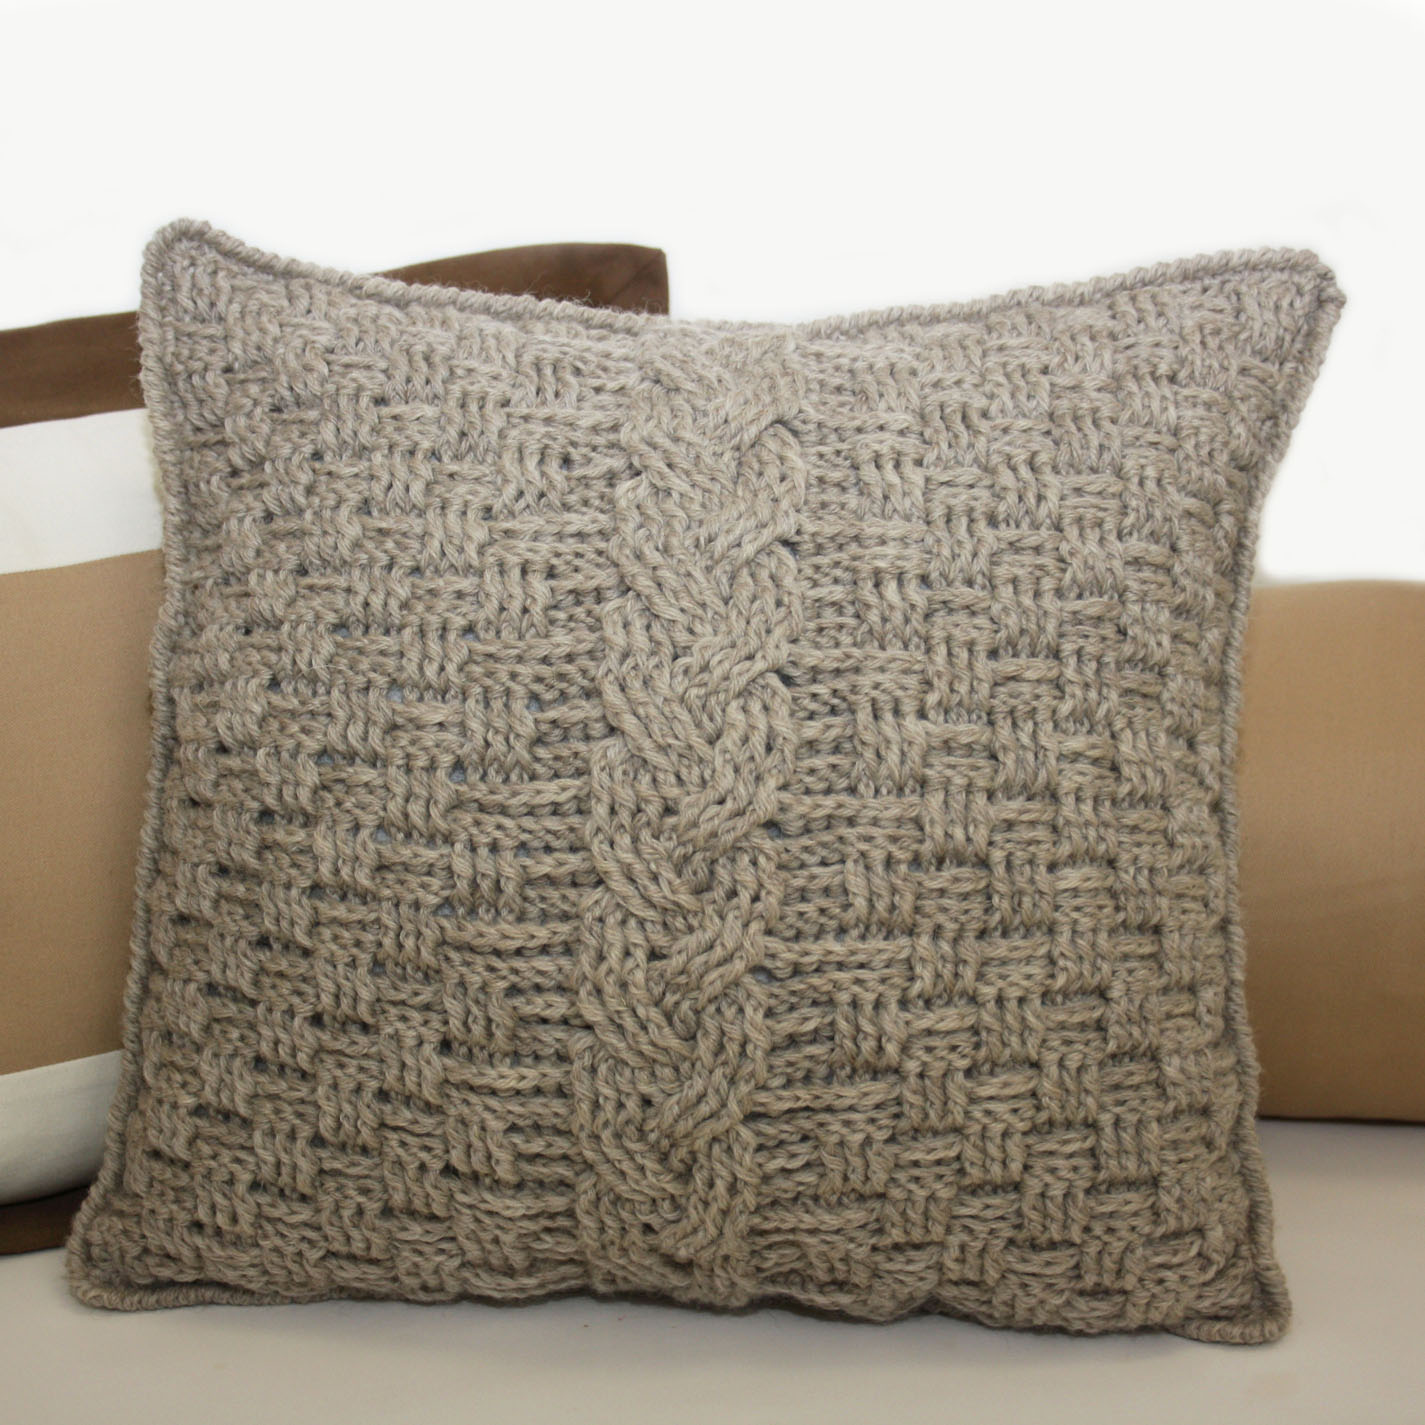 ... ?sew?cute design shop: new crochet pattern - aran accent pillow